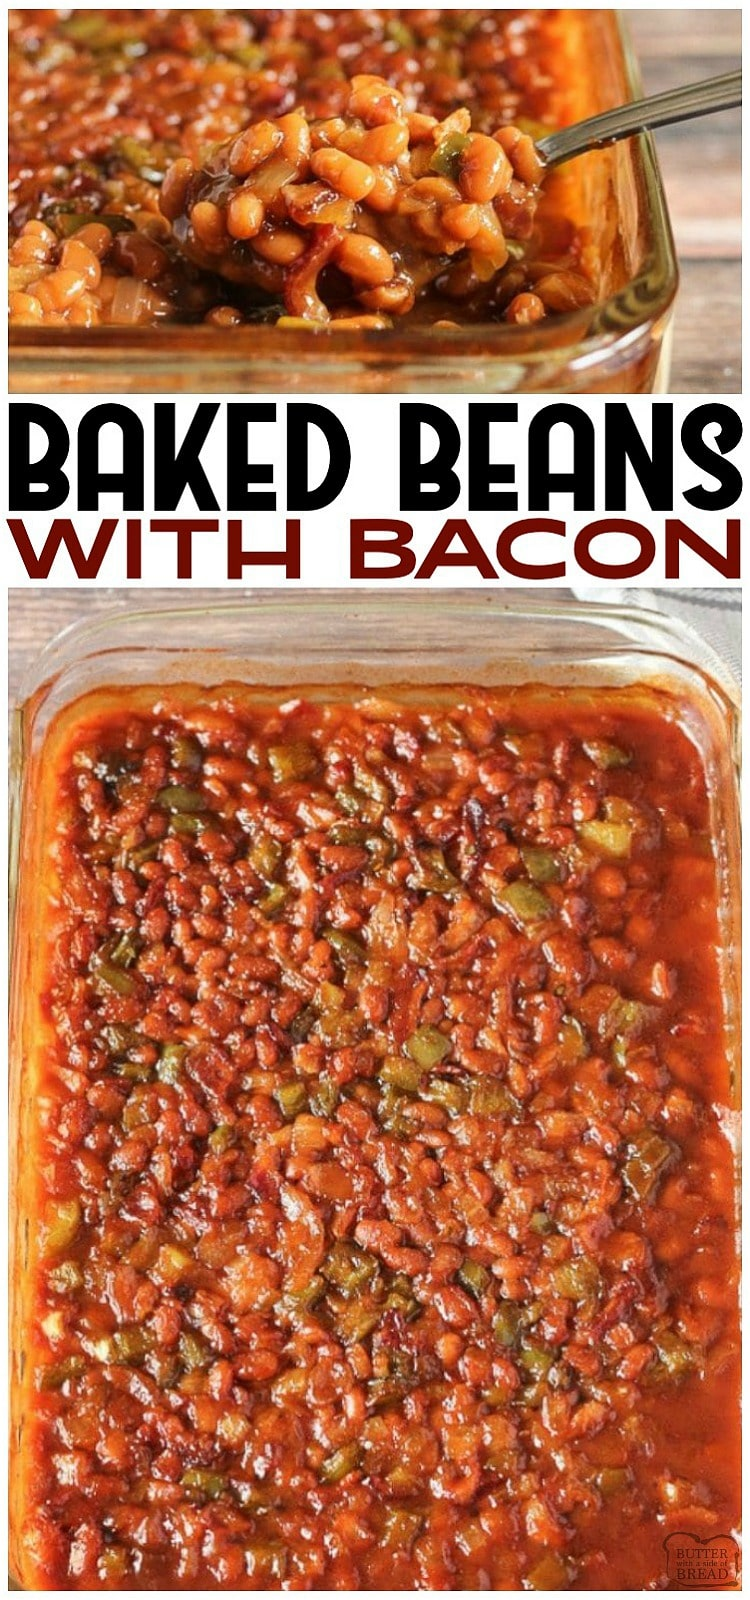 Baked Beans with Bacon recipe is a classic baked bean recipe loaded with bacon, green peppers, pork and beans and the perfect blend of seasonings! Take this baked beans recipe with bacon dish along for your next BBQ potluck. #beans #bakedbeans #bbq #bacon #sidedish #grilling #recipe from BUTTER WITH A SIDE OF BREAD